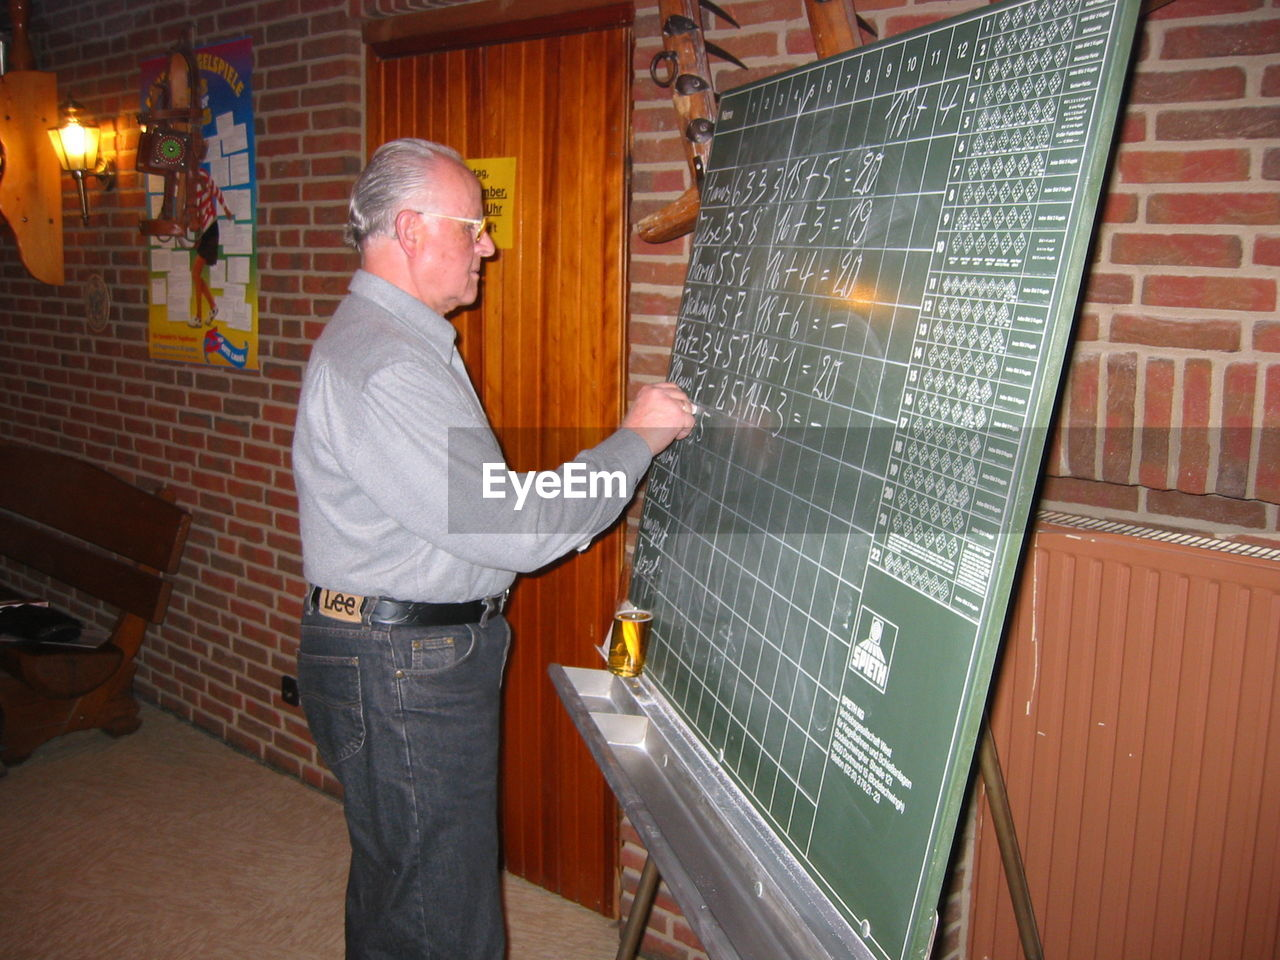 standing, men, occupation, males, adult, indoors, one person, three quarter length, mature adult, working, holding, industry, side view, senior adult, architecture, blackboard, senior men, mature men